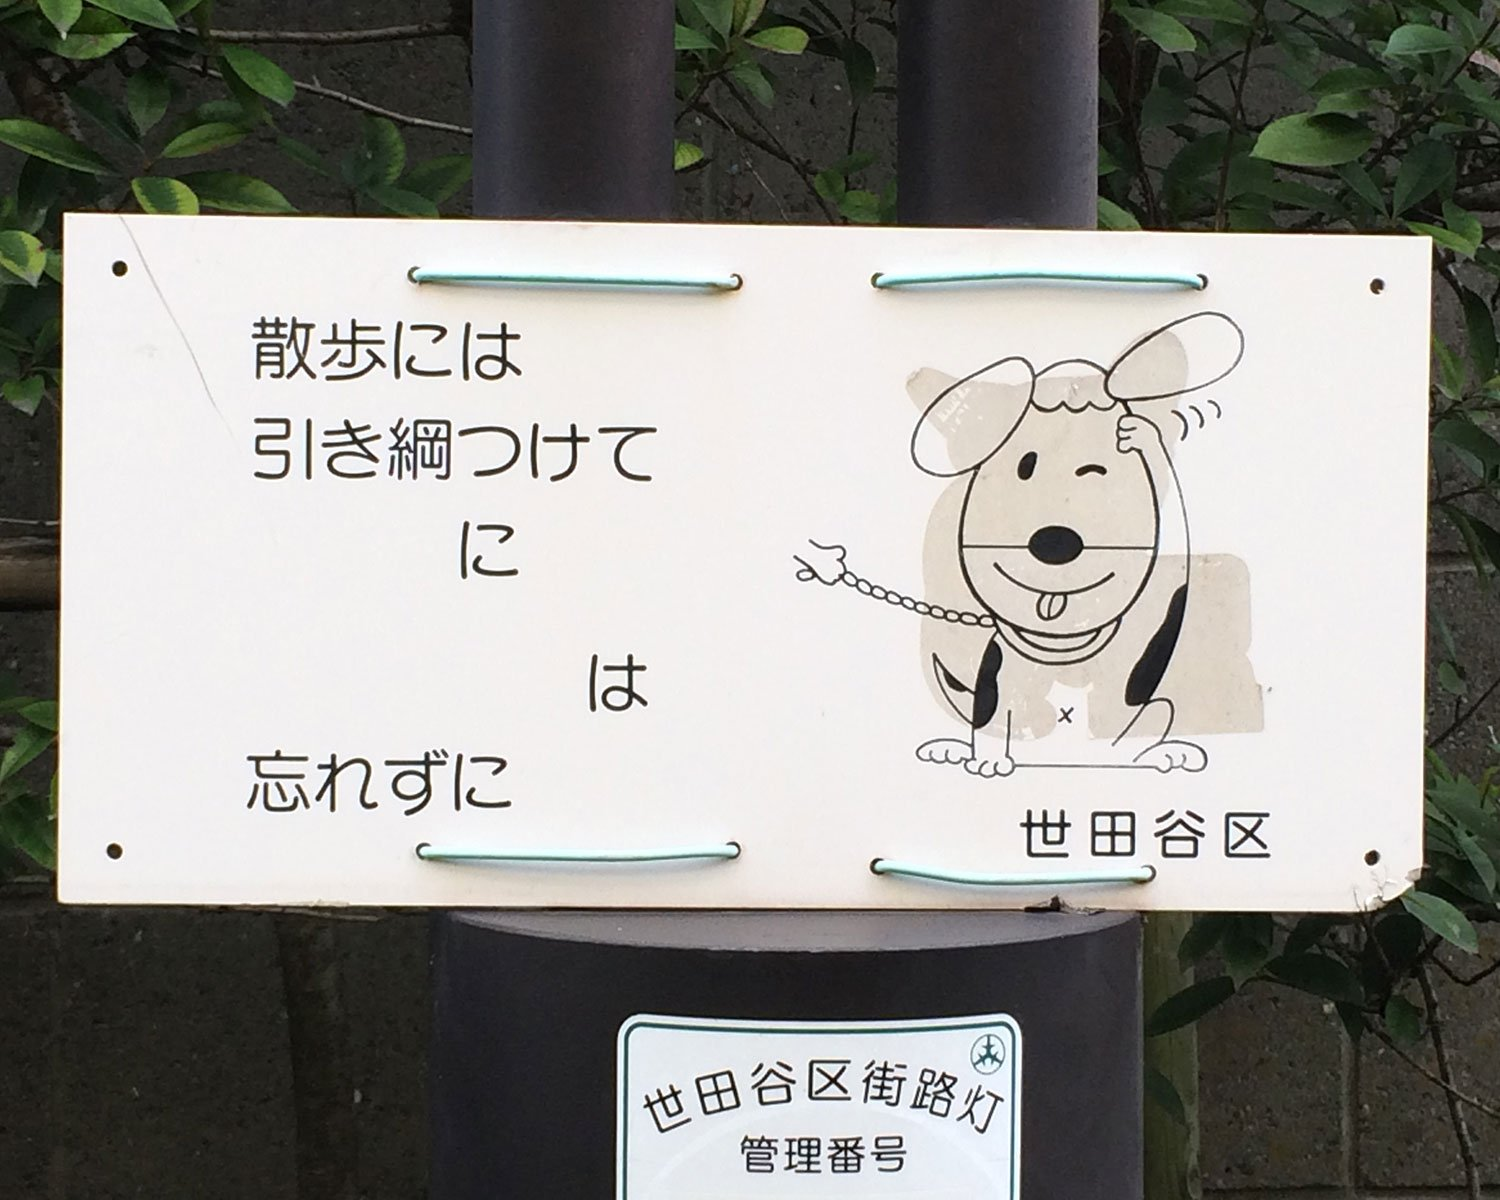 Dog owners exam 《飼い主検定》